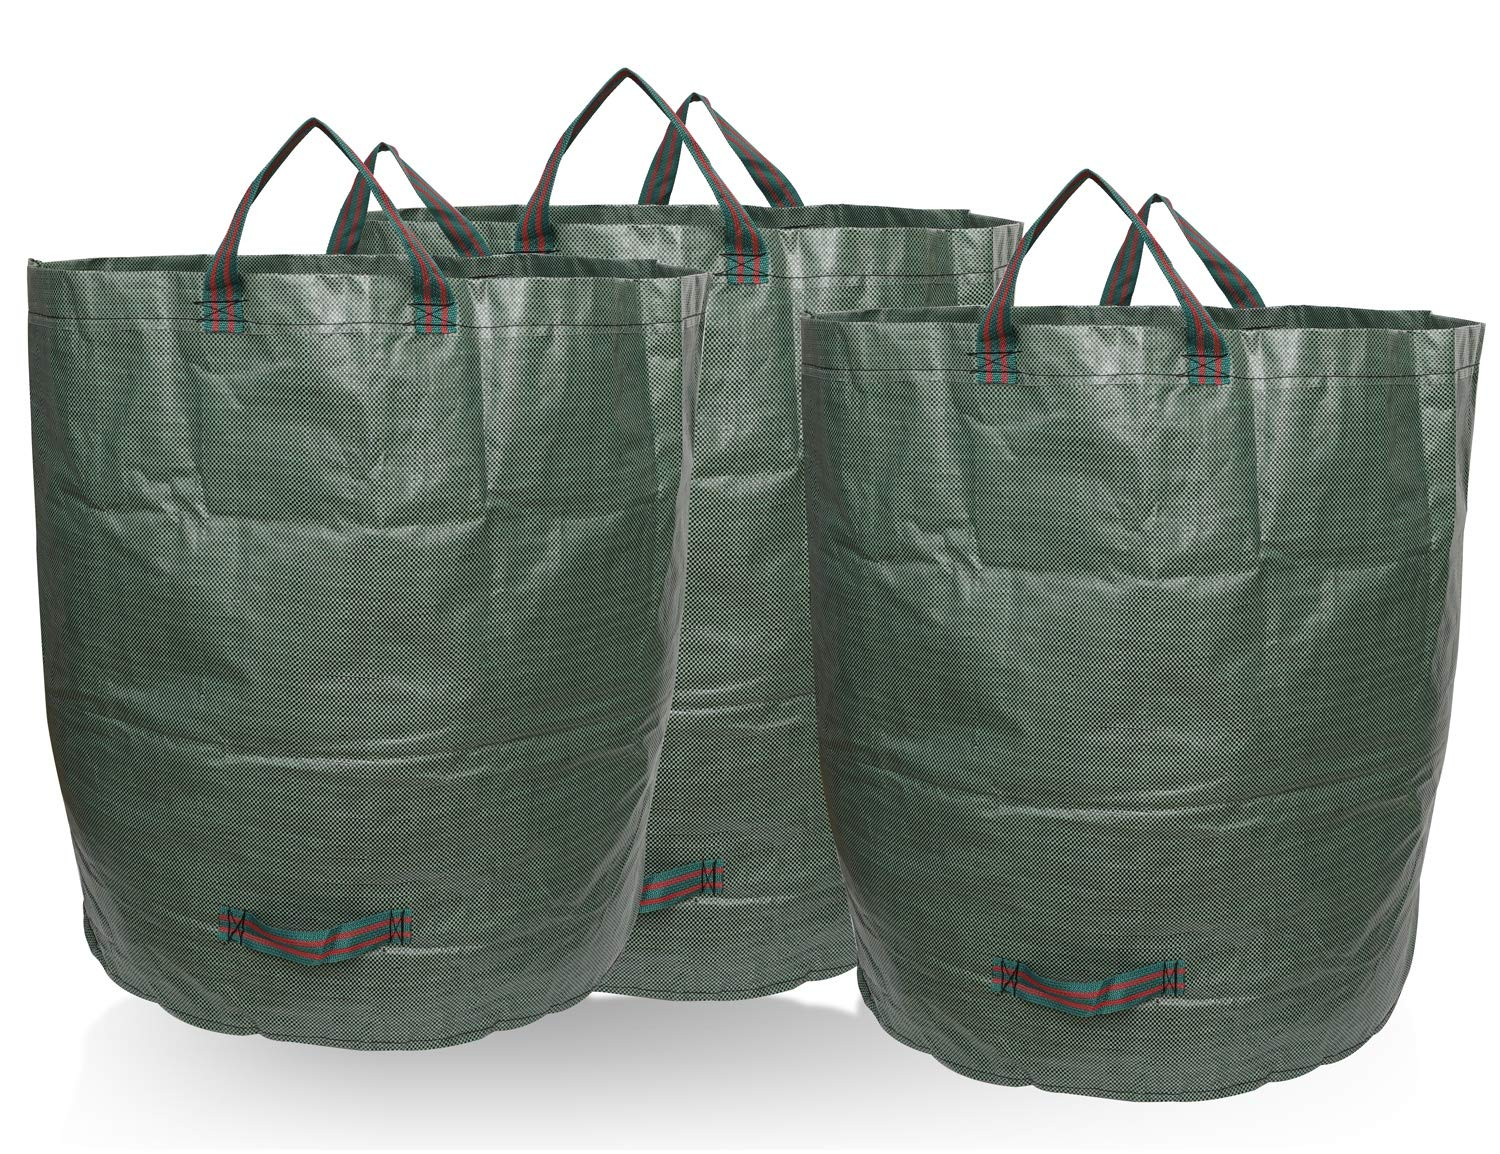 BNSPLY 3-Pack 72 Gallons Garden Waste Bags - Large Reusable Gardening Bagster with 4 Handles - Collapsible Lawn and Yard Waste Containers by BNSPLY